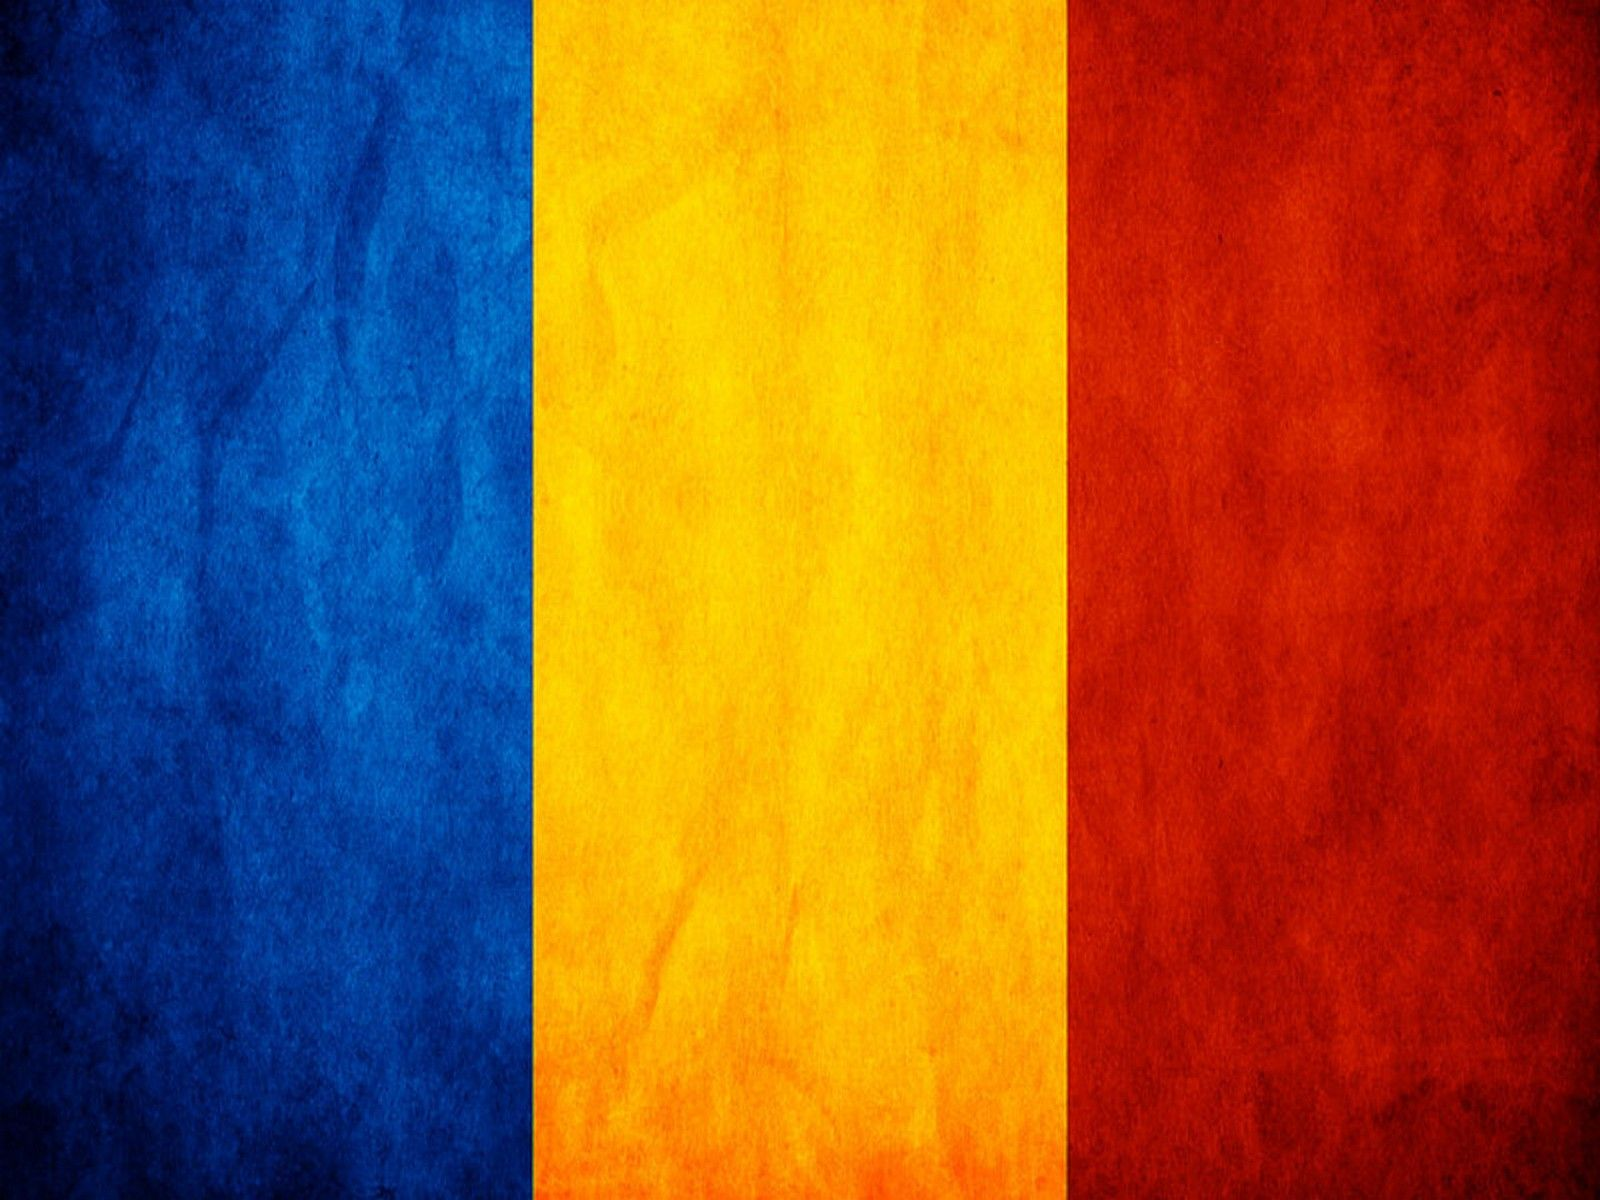 The national flag of Romania is a tricolor with vertical stripes ...